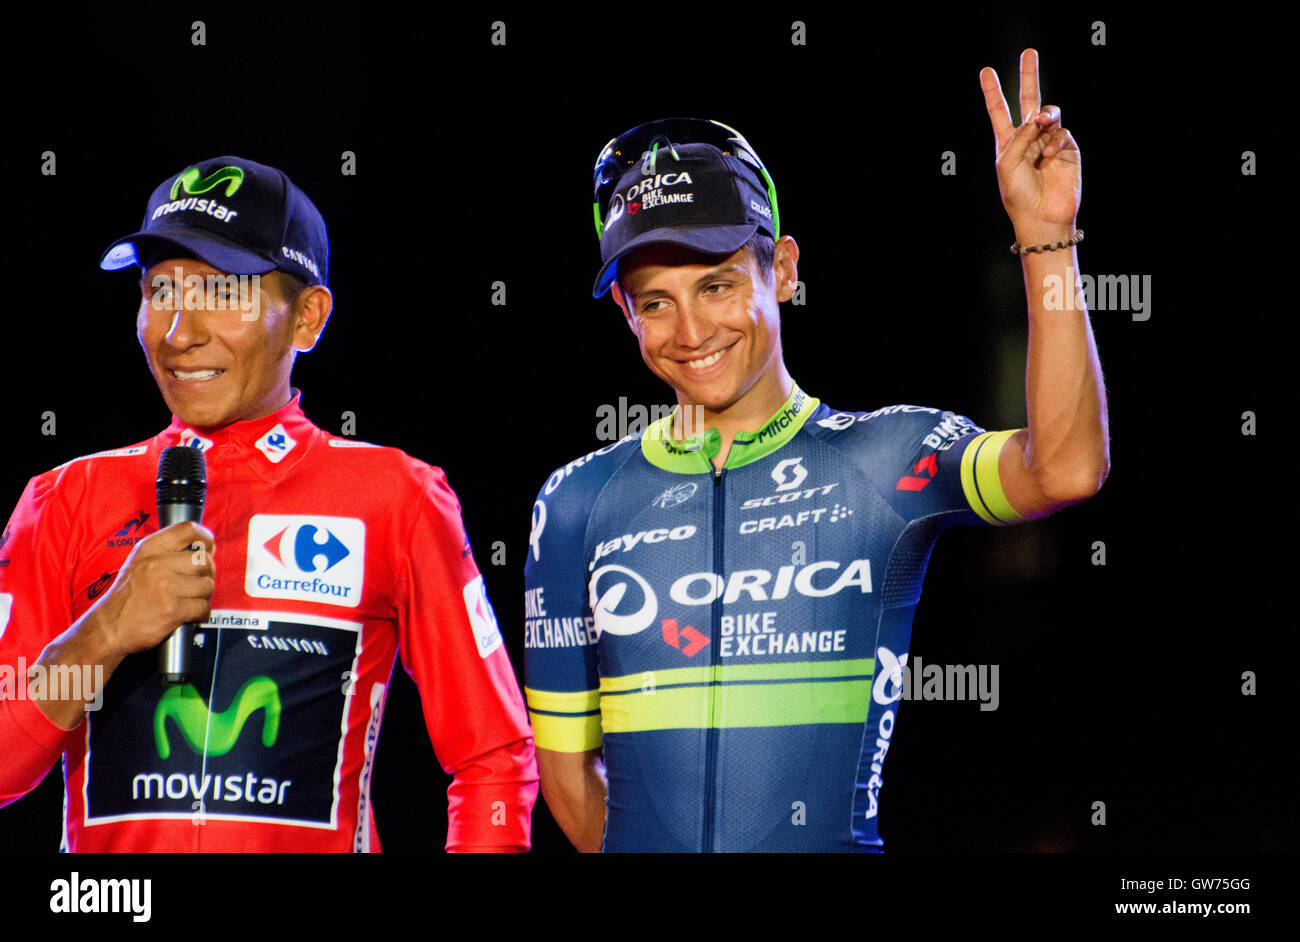 Madrid, Spain. 11th September, 2016. Nairo Quintana (1st, Movista Team) and Esteban Chaves (3rd, Orica) with kids - Stock Image